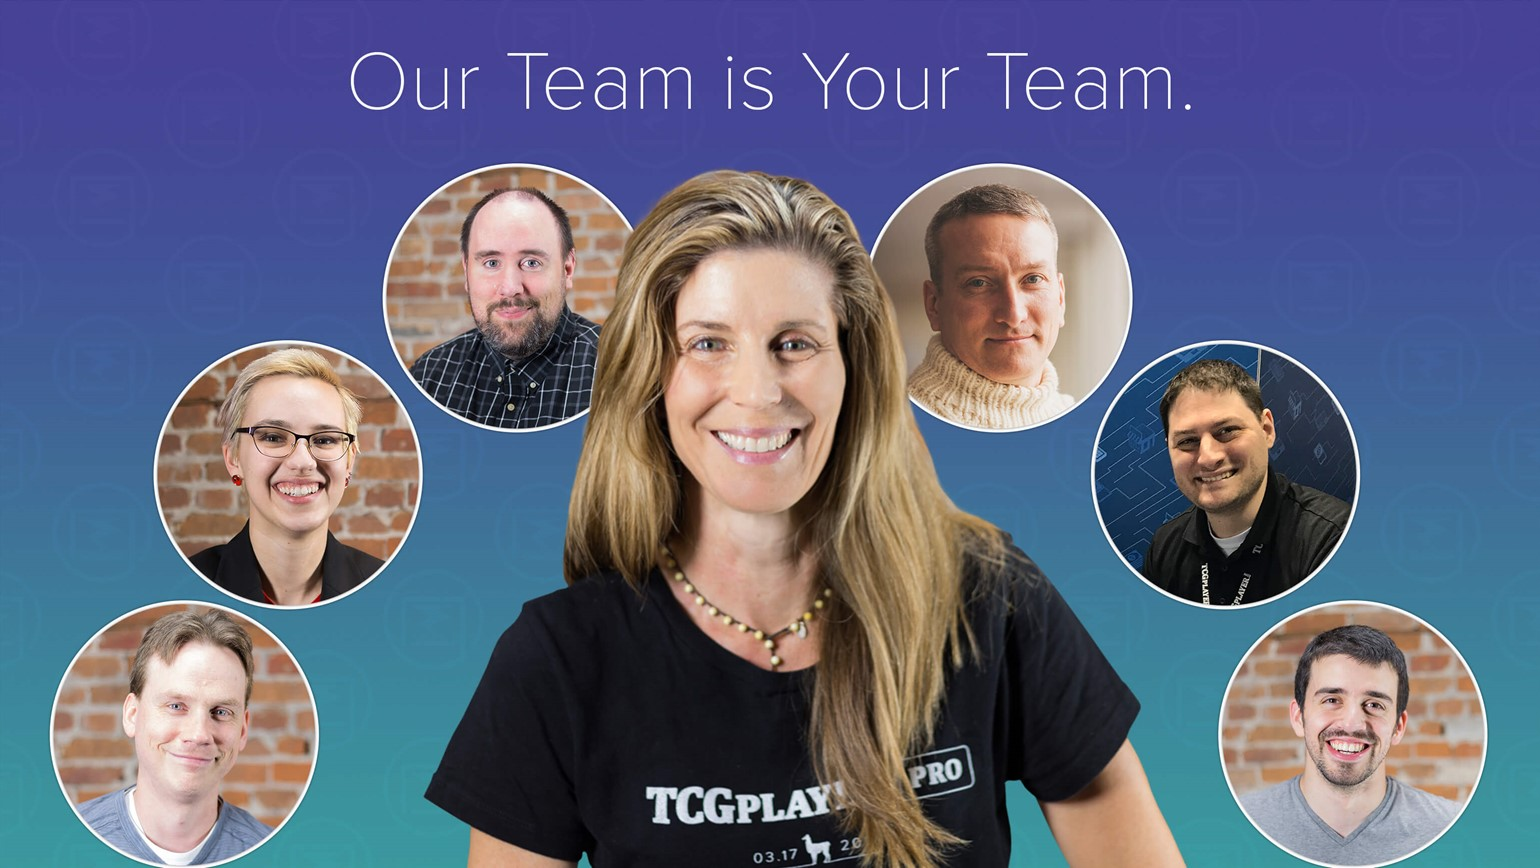 How the TCGplayer Customer Success Team Can Help You Streamline and Grow Your Business